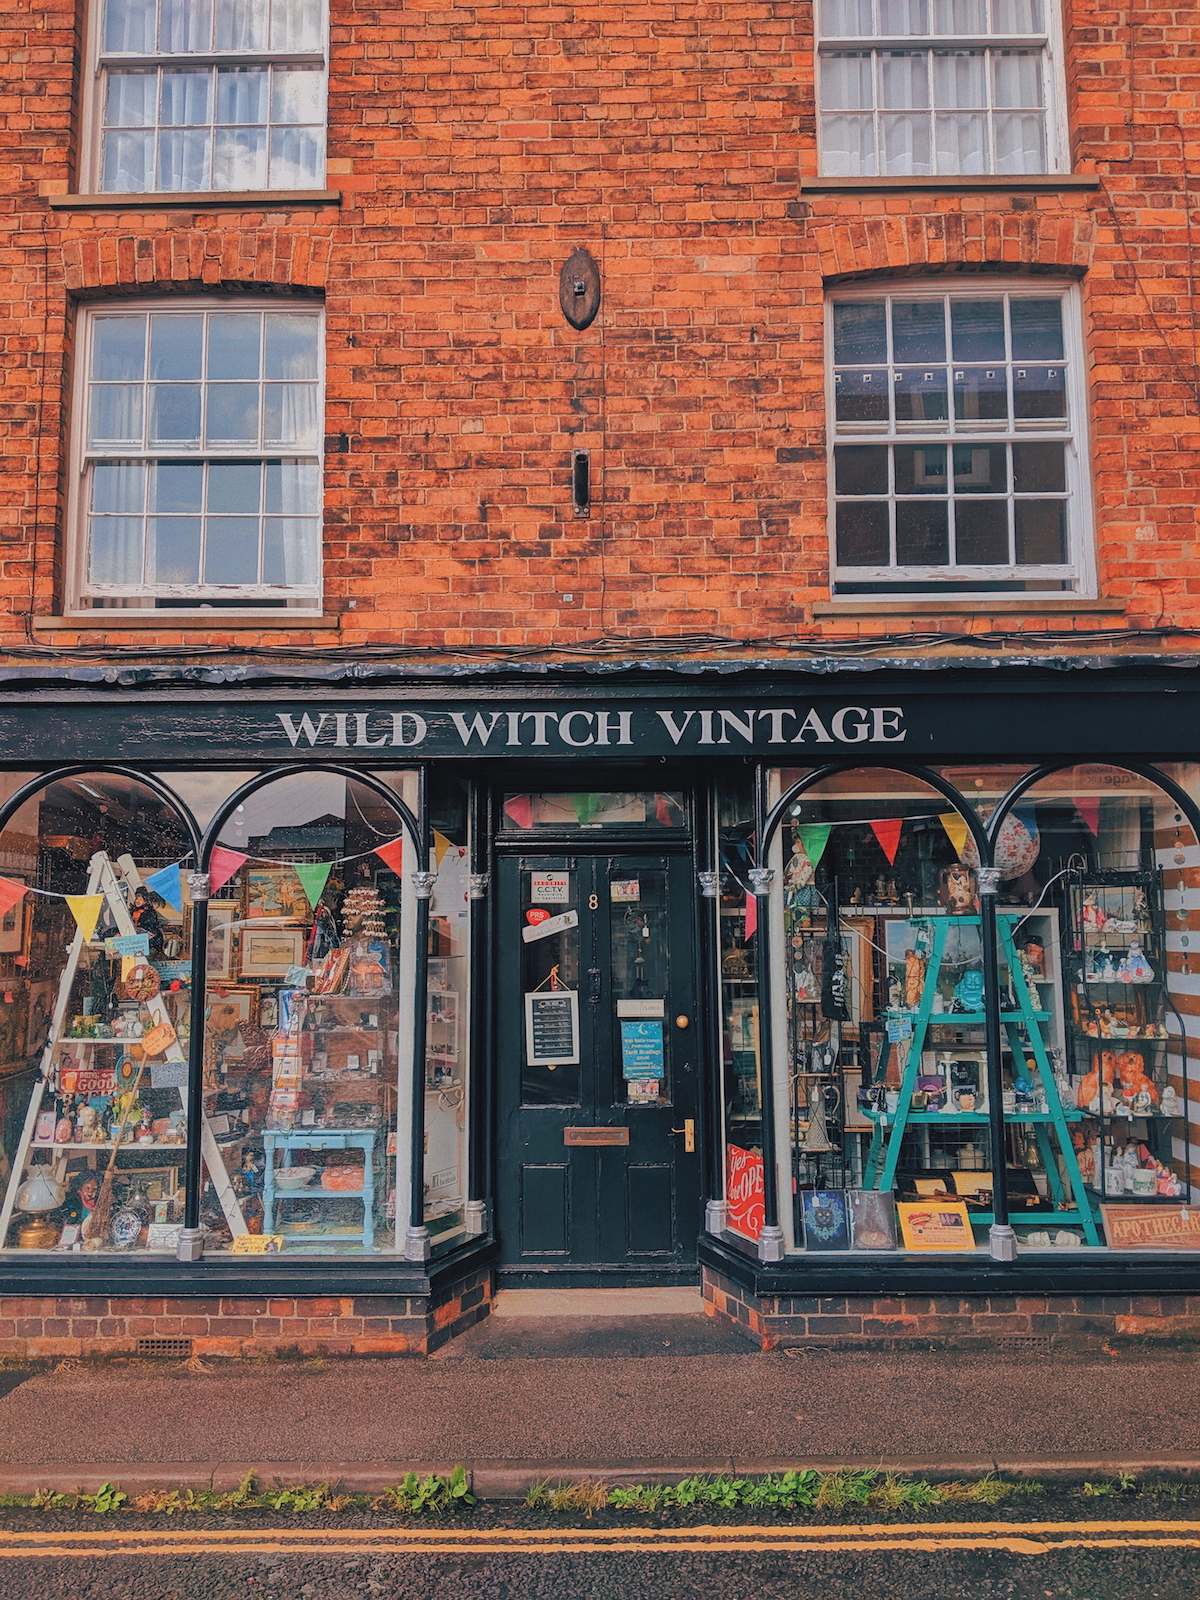 Wild Witch Vintage in Louth, Lincolnshire